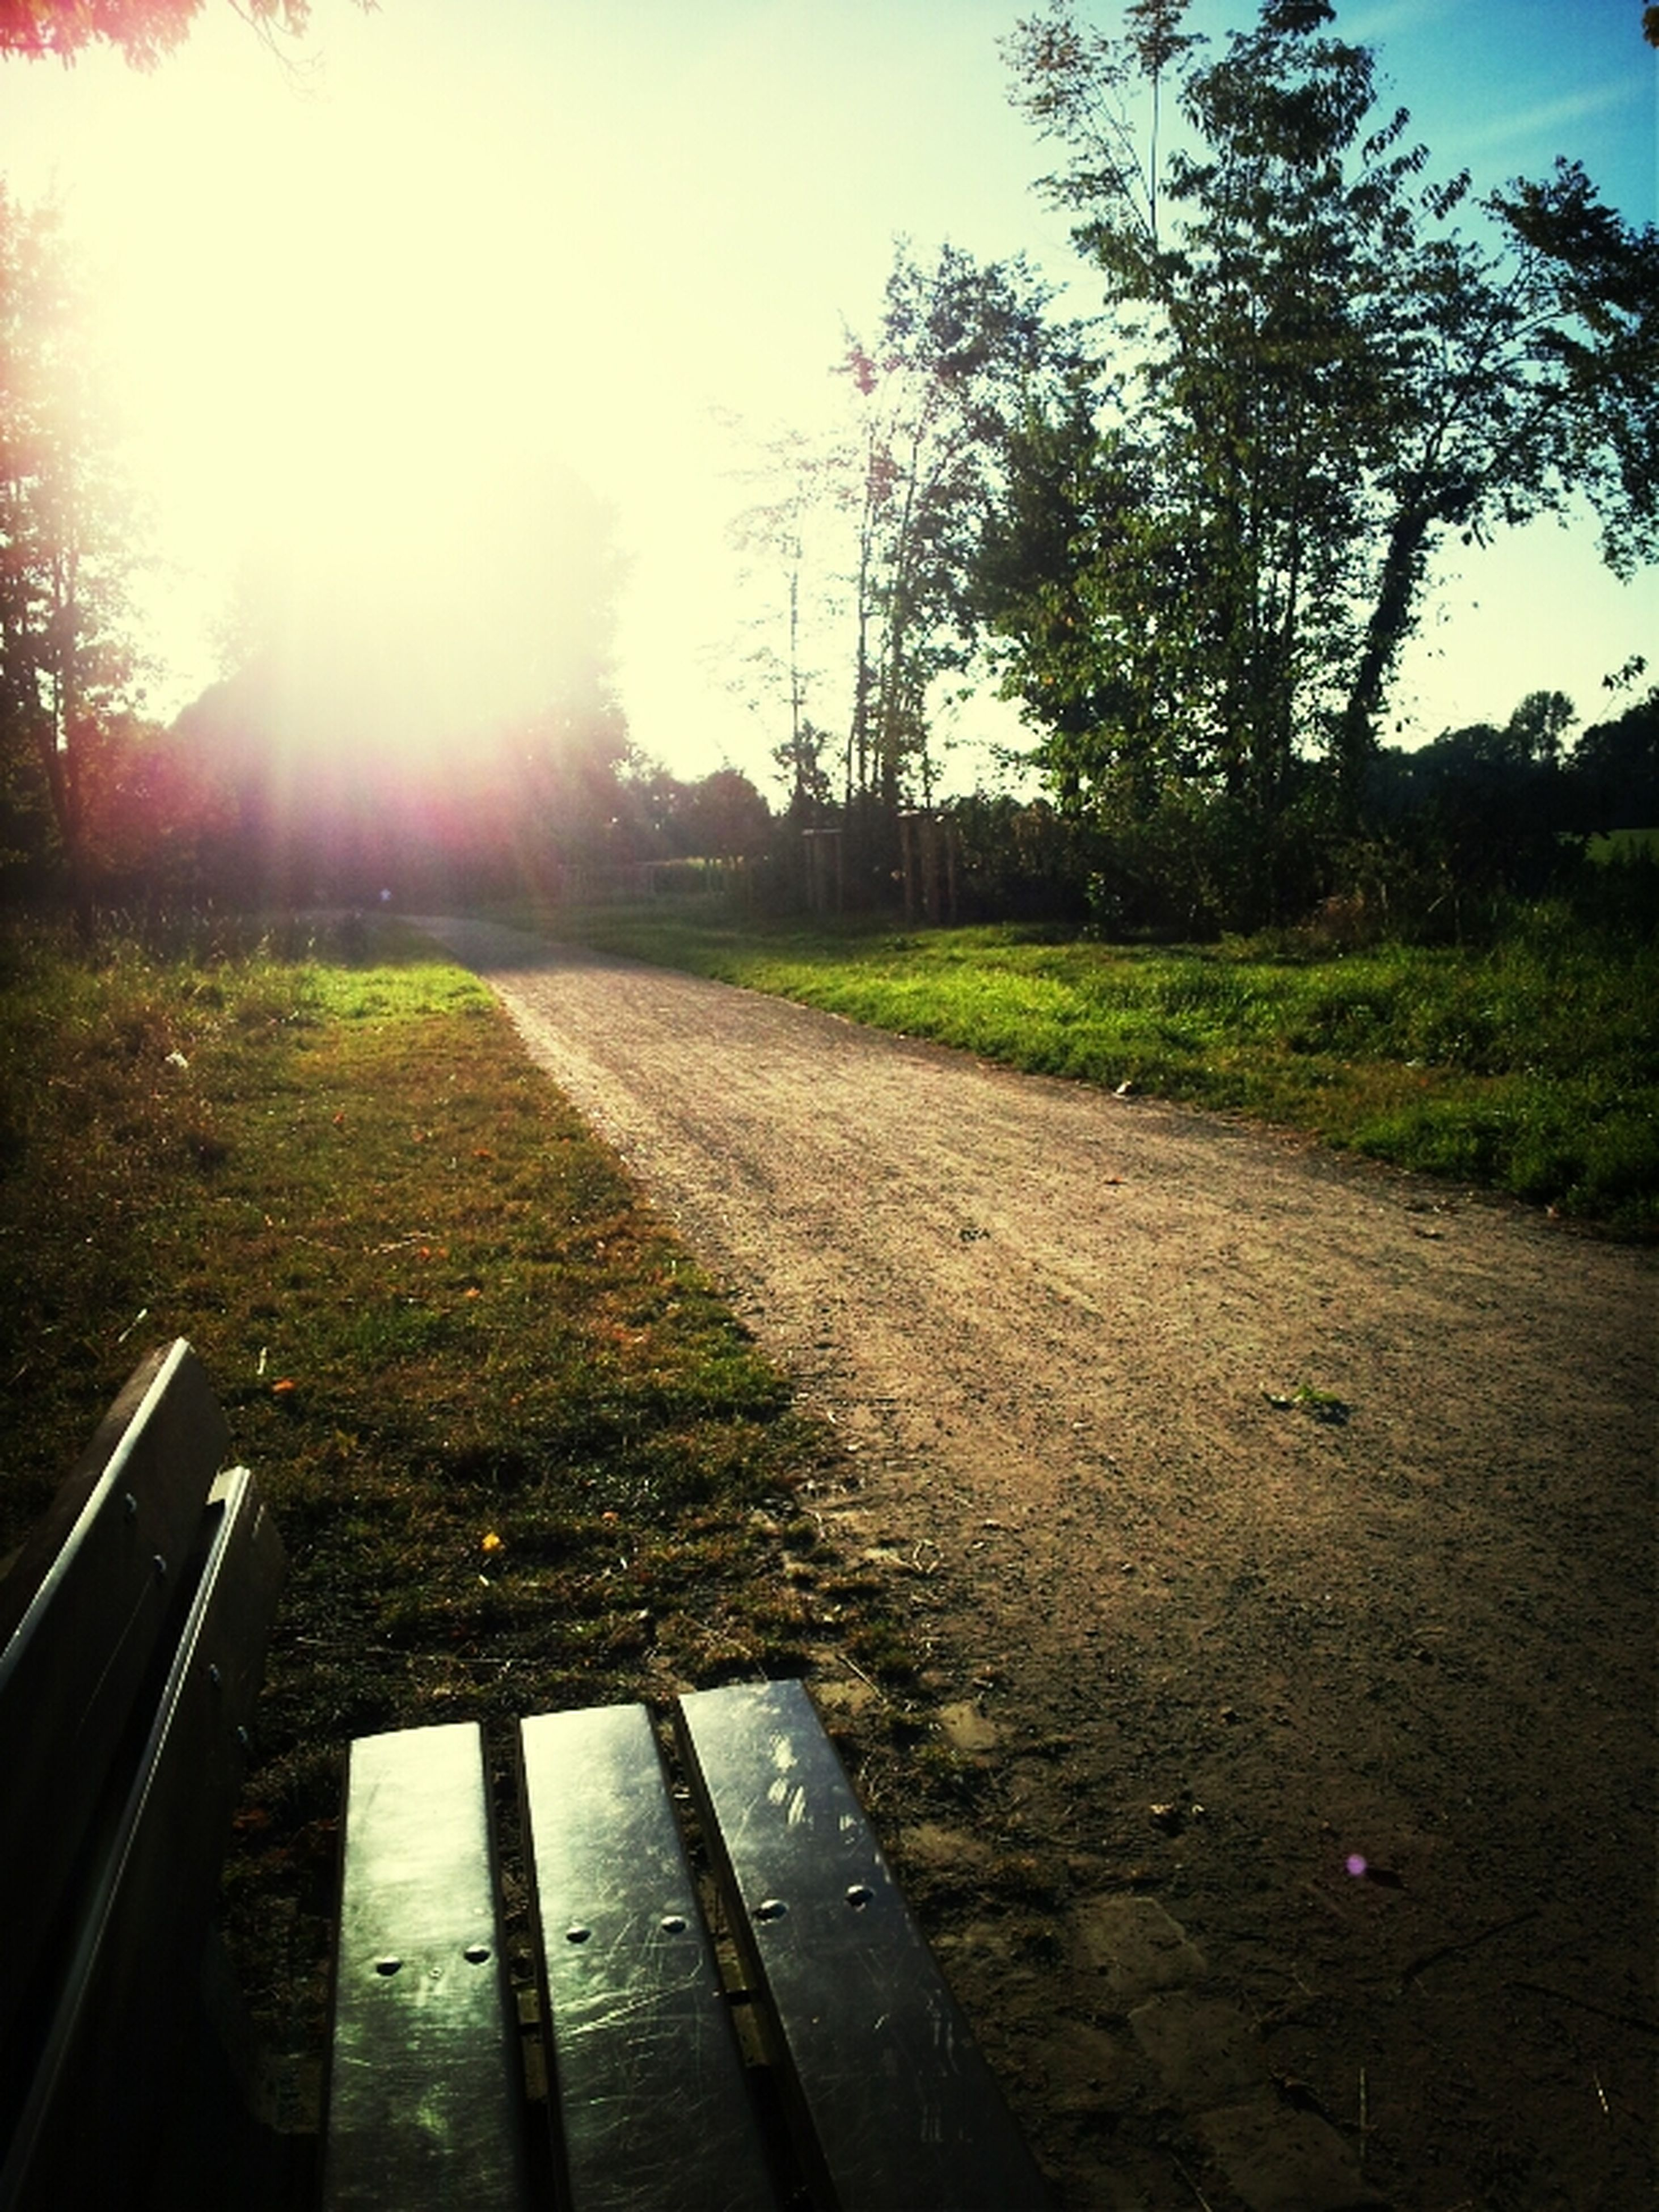 sun, sunbeam, sunlight, lens flare, tree, grass, sky, field, tranquility, the way forward, sunny, nature, landscape, clear sky, tranquil scene, bright, sunset, road, diminishing perspective, vanishing point